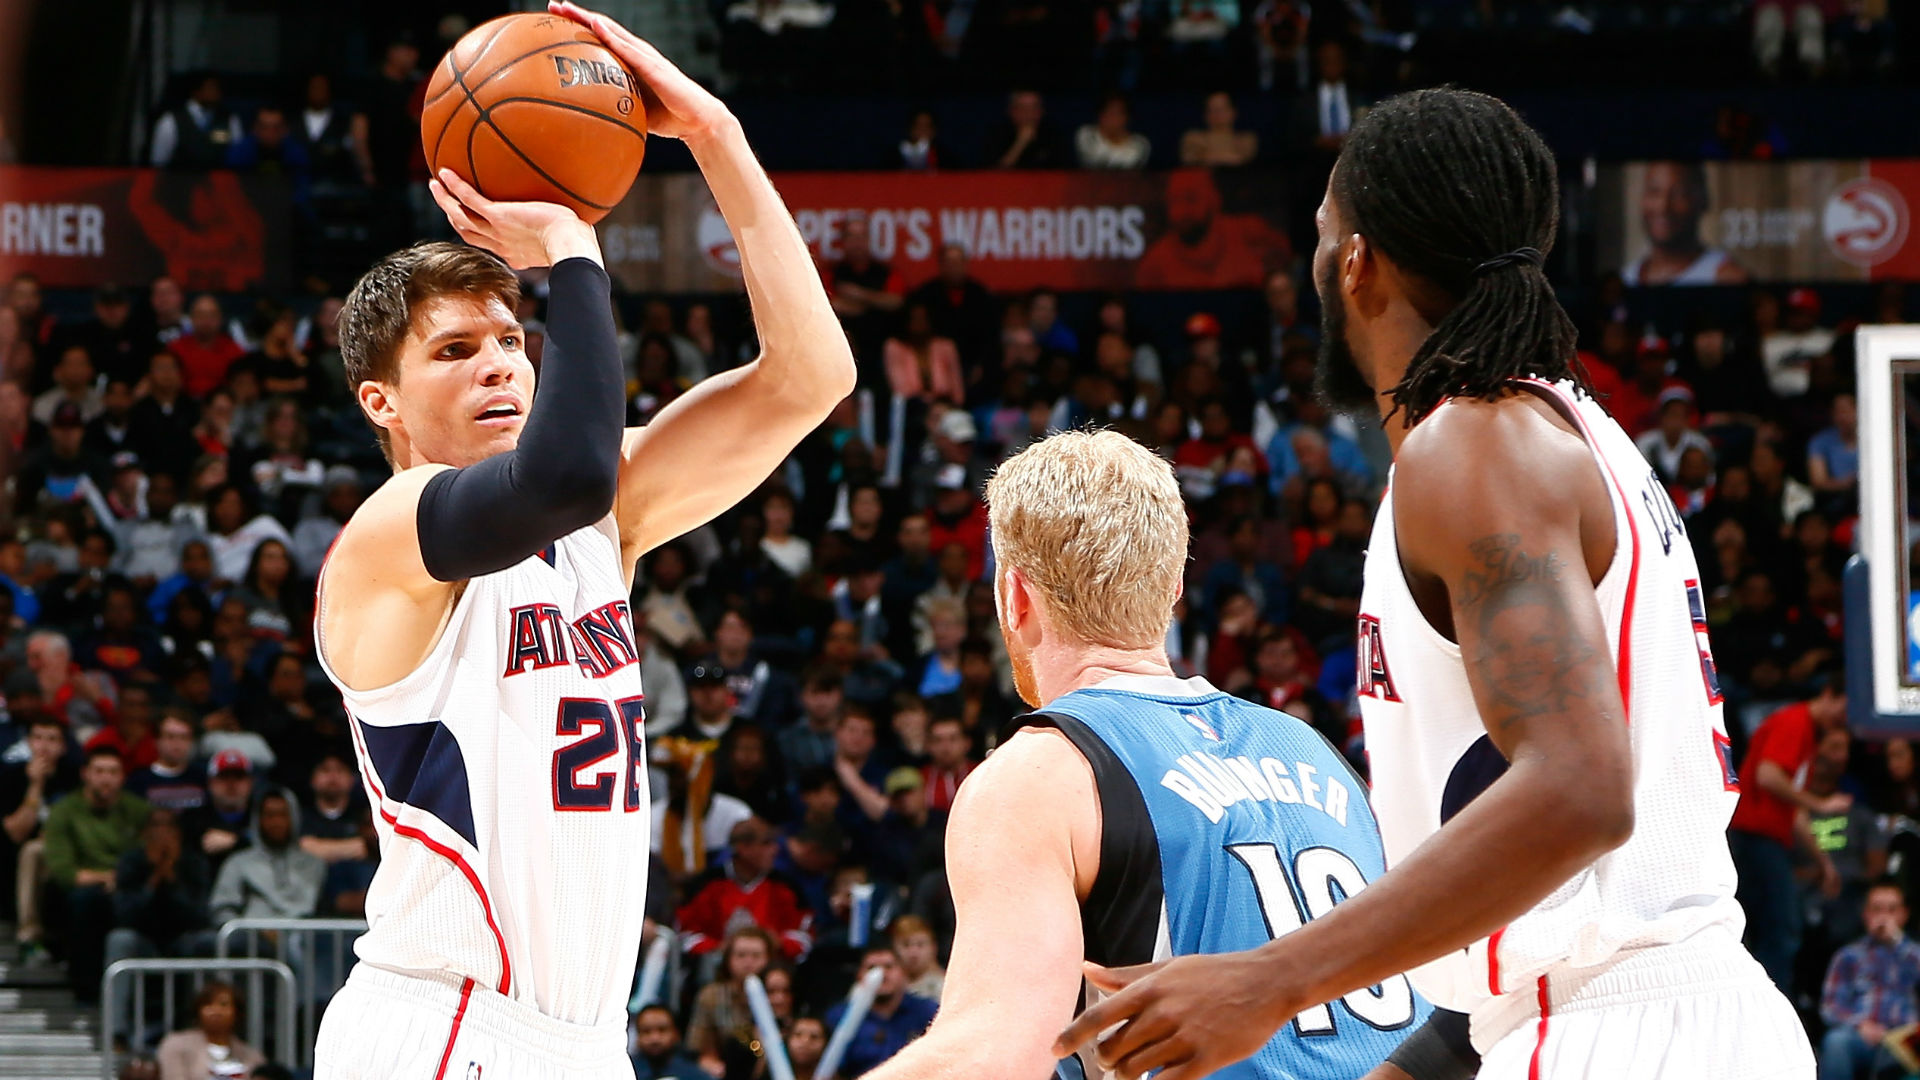 Cavs nearing deal for Hawks' Korver